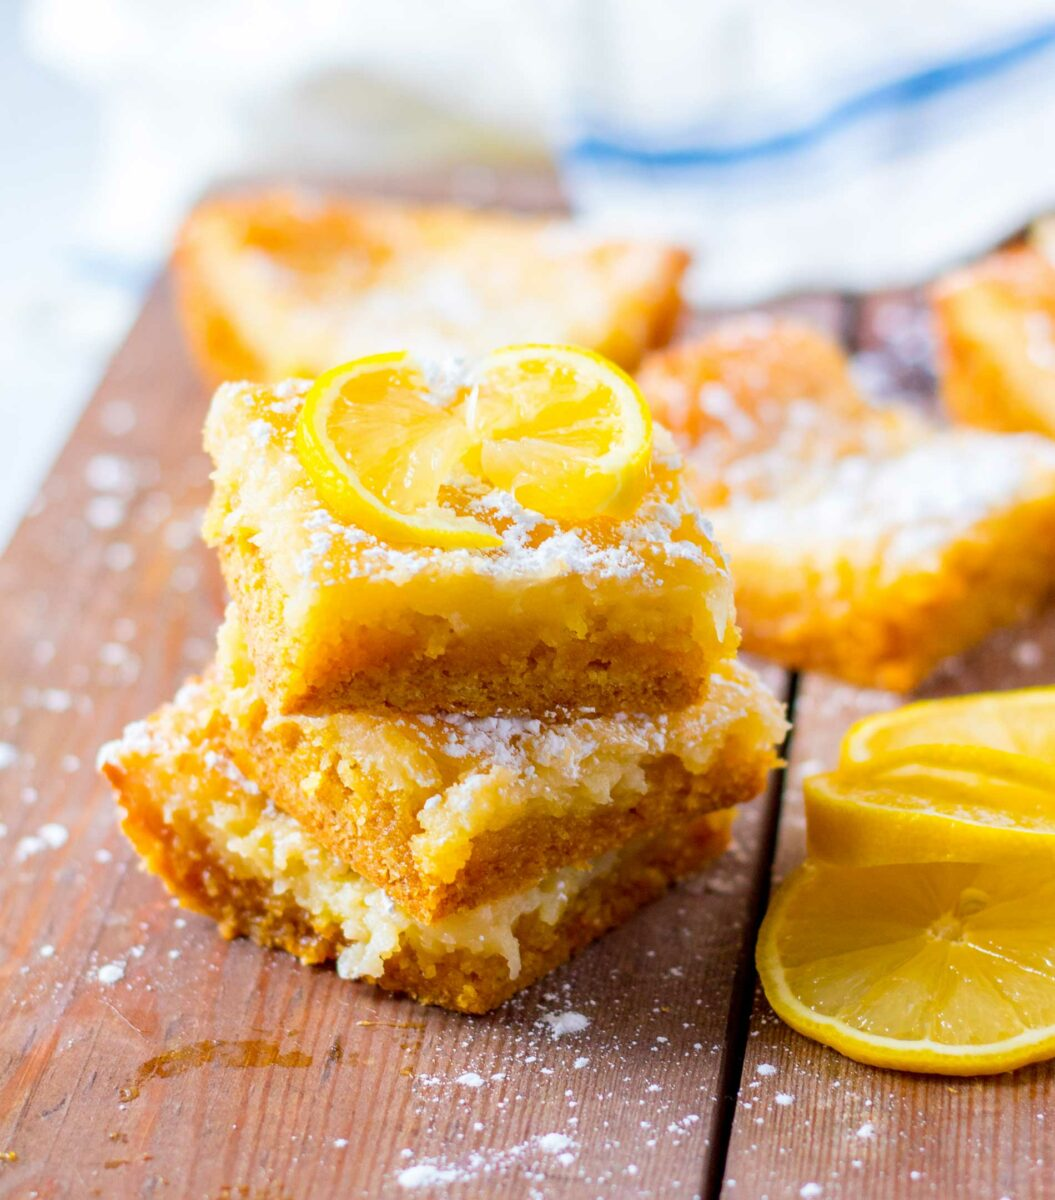 A few pieces of lemon cake are stacked on top of one another on a wooden surface.